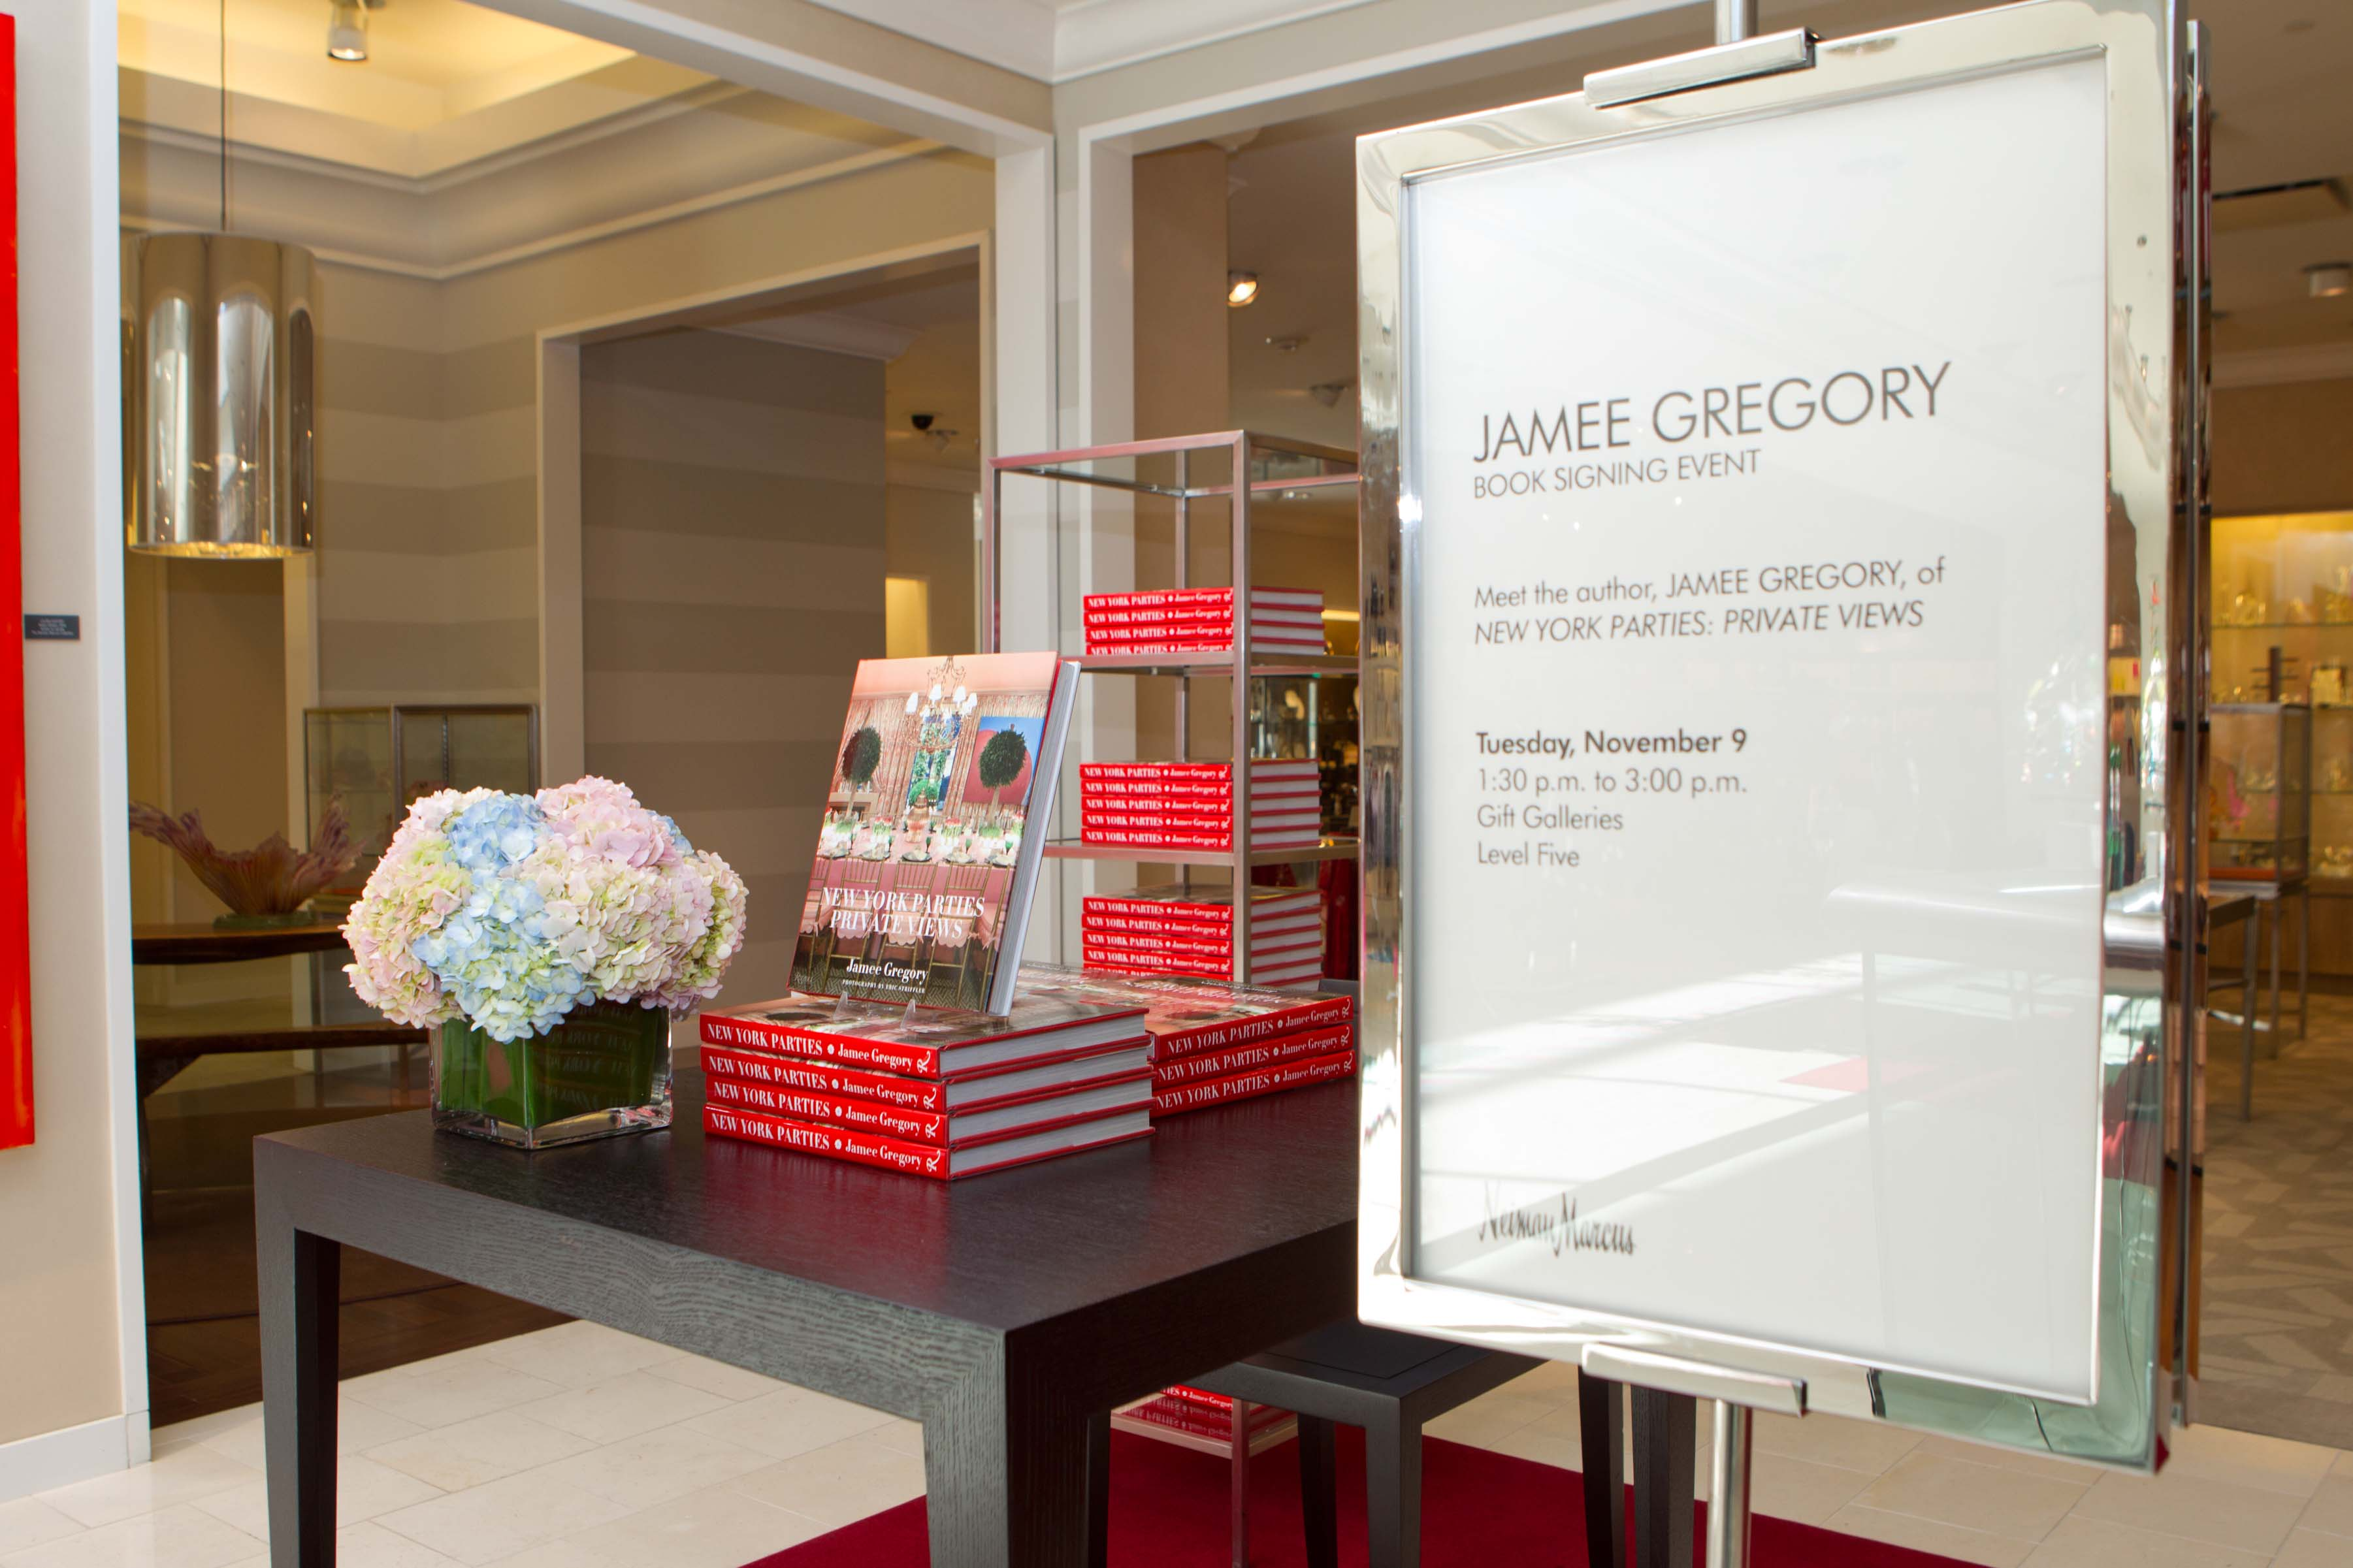 Haute Event: Jamee Gregory Public Book Signing at Neiman Marcus